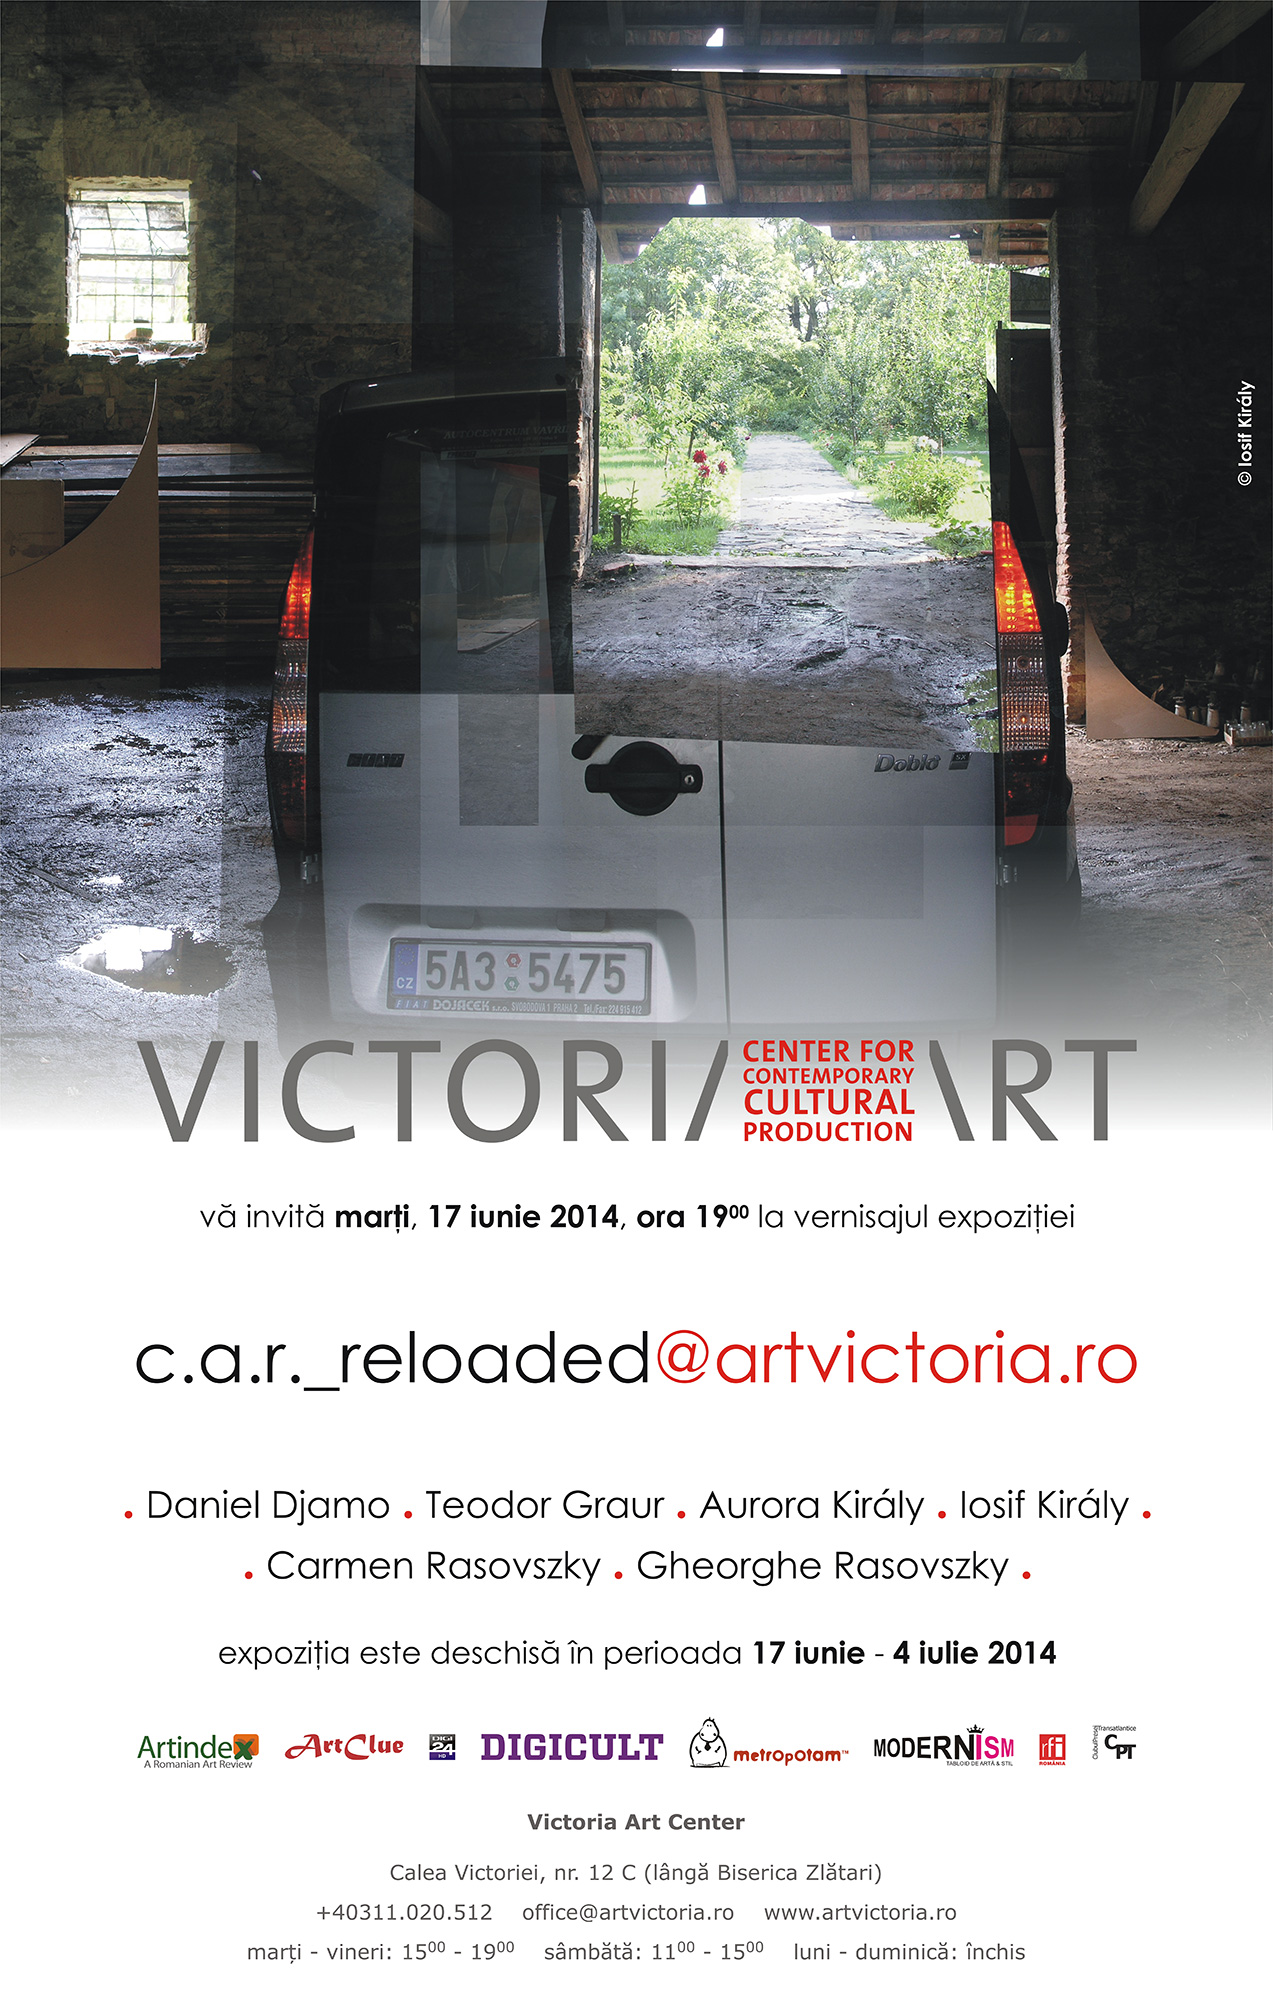 Vernisaj c.a.r._reloaded @ artvictoria.ro